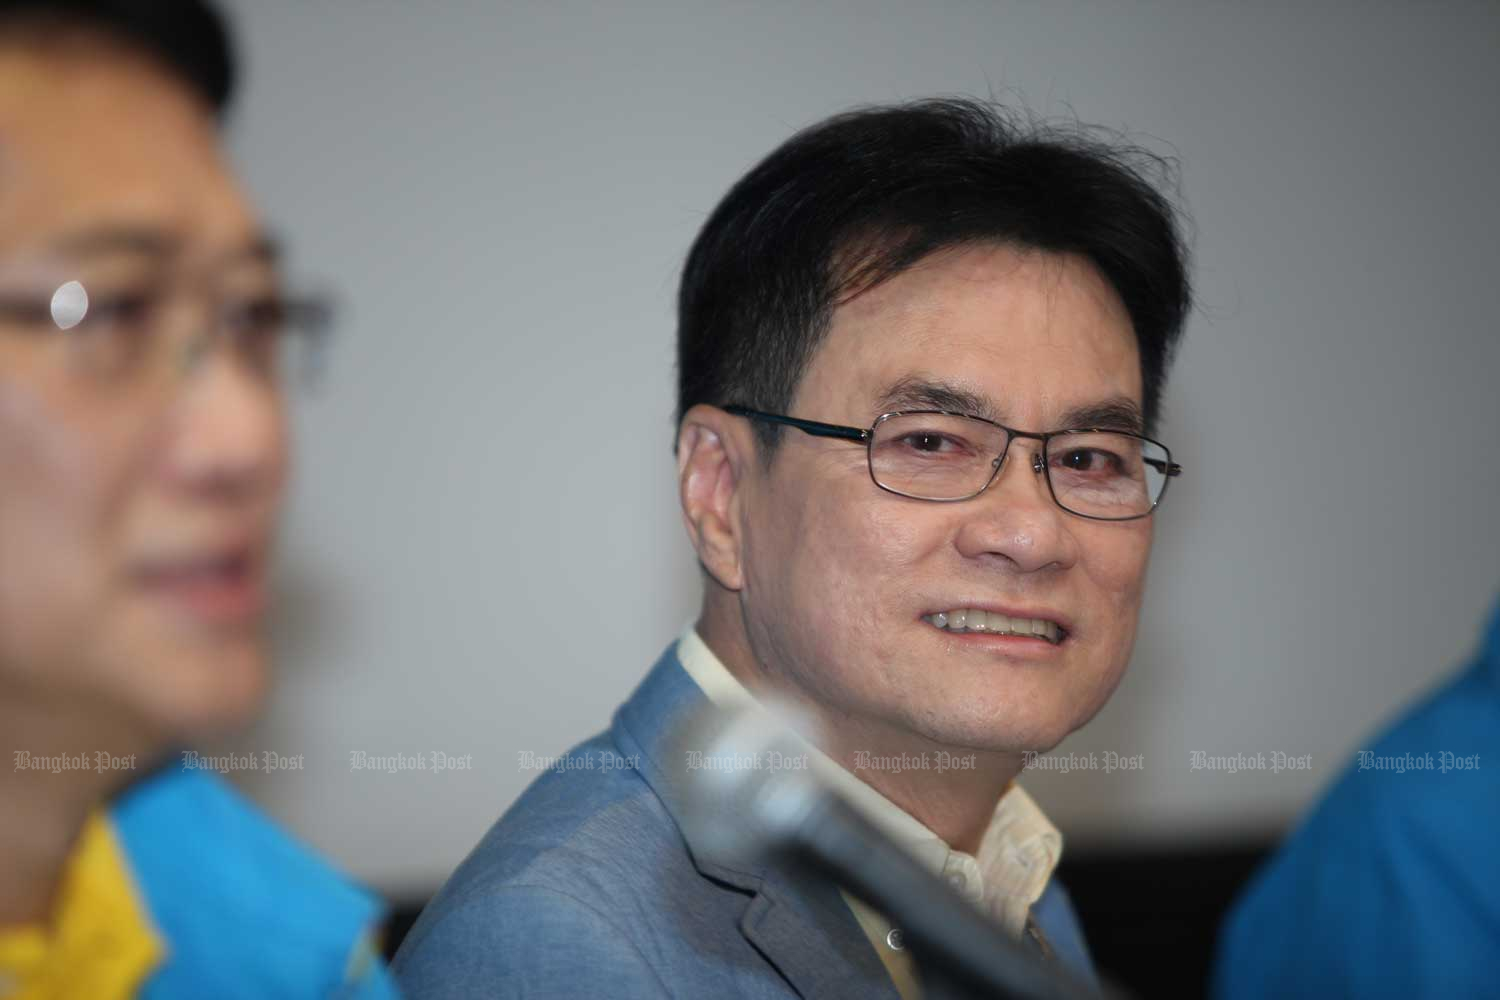 Democrat Party leader Jurin Laksanawisit has denied there are rifts in the party. (Bangkok Post photo)